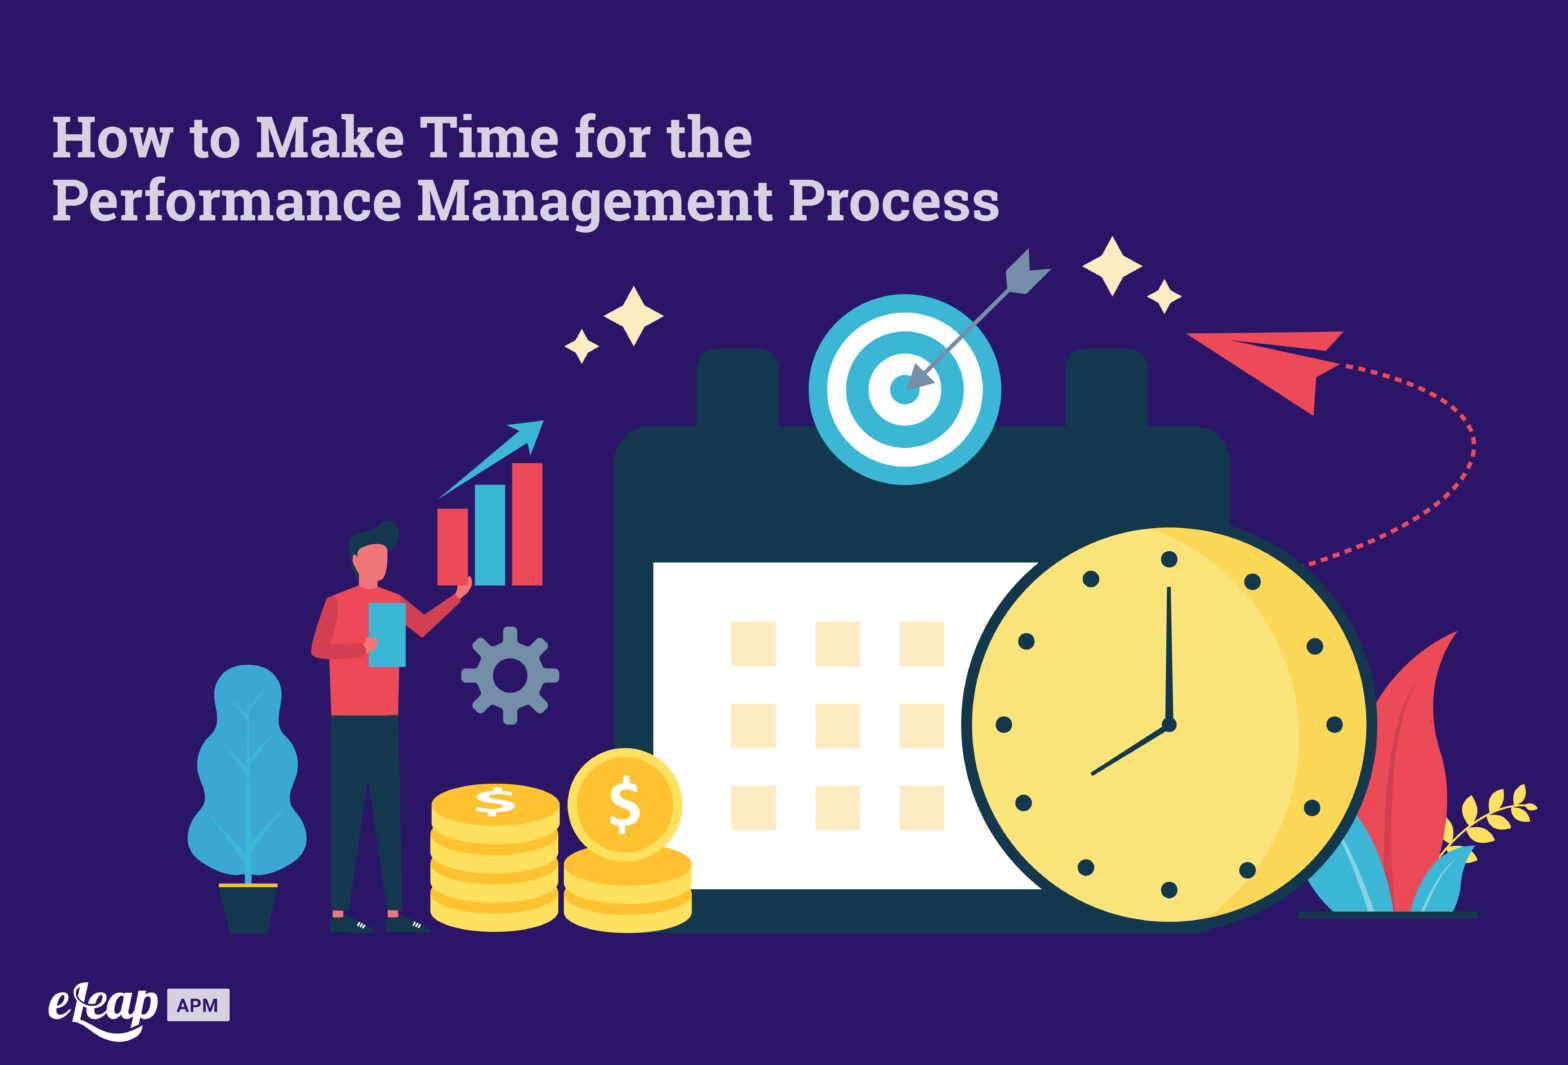 How to Make Time for the Performance Management Process